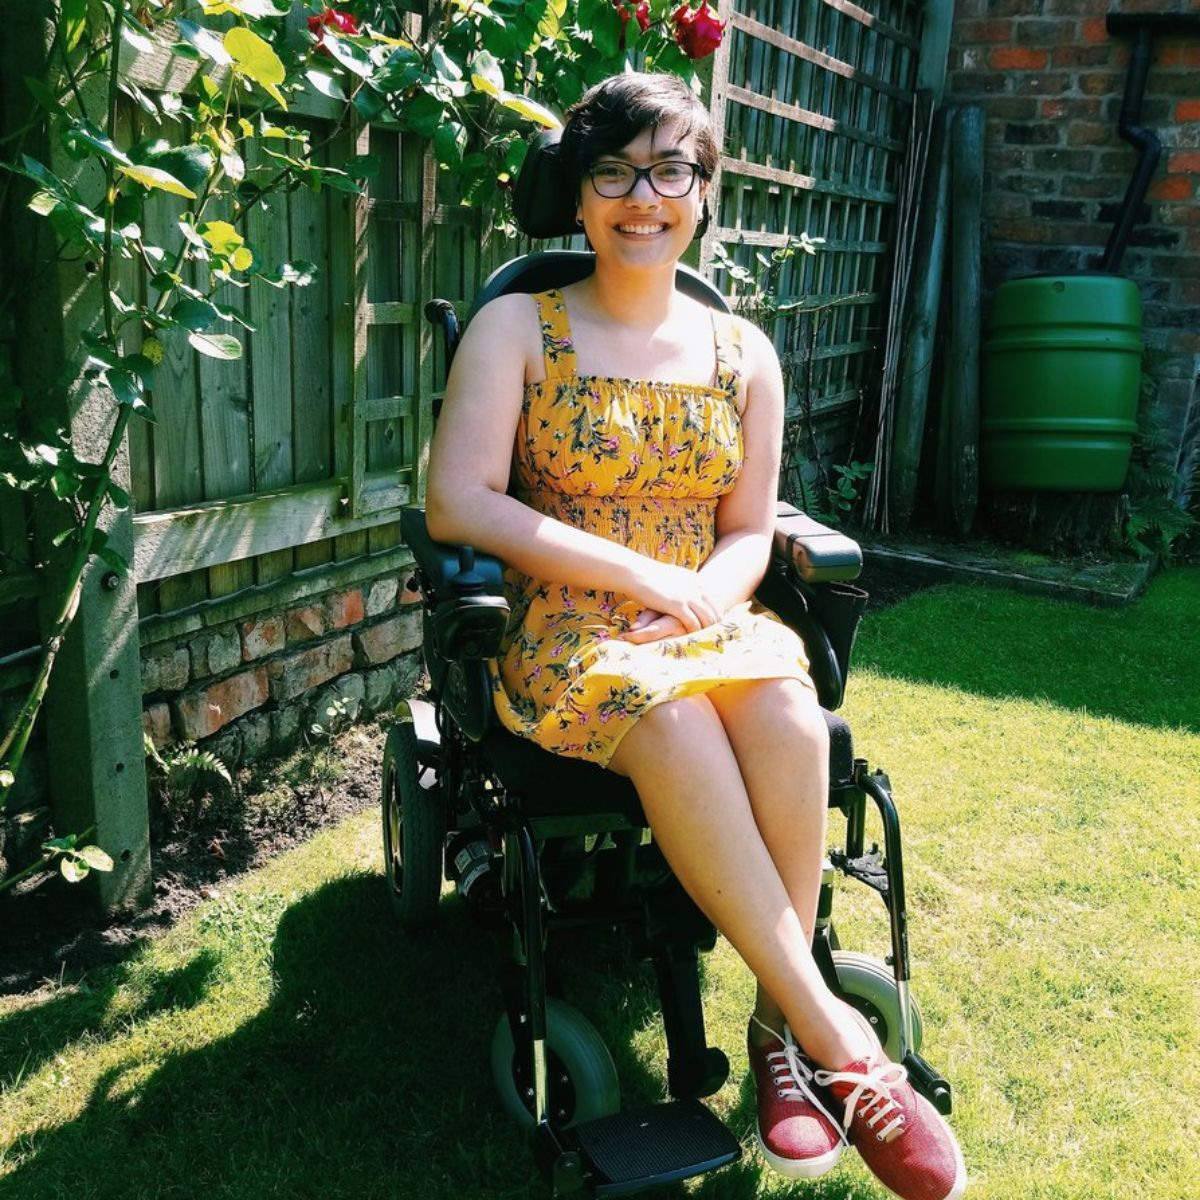 rosie has short hair and wears glasses. she's sat in her powerchair outside in the garden, wearing a yellow dress and red trainers